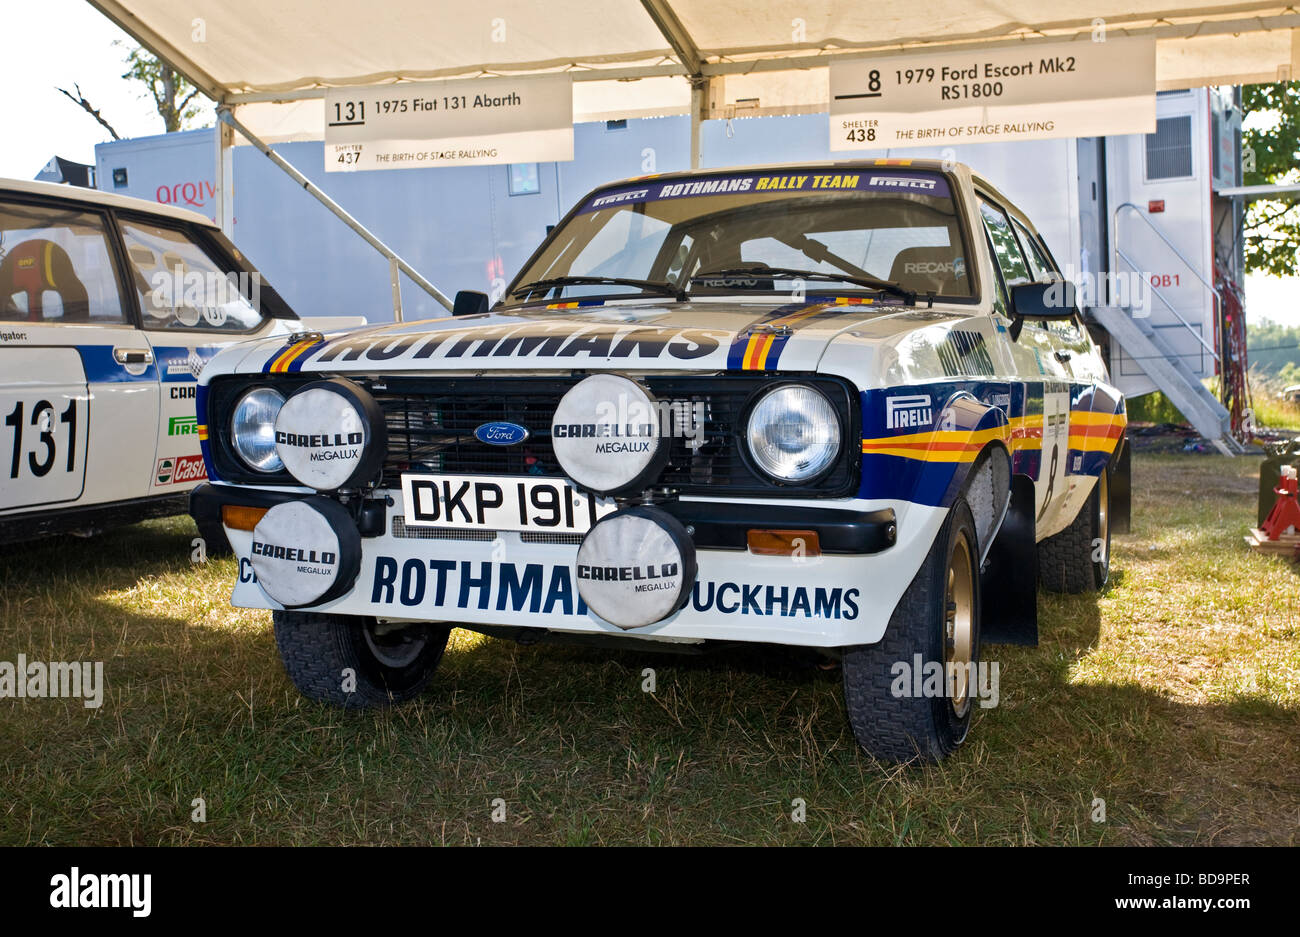 1979 ford escort mk2 rs1800 dans le paddock a goodwood festival of speed sussex